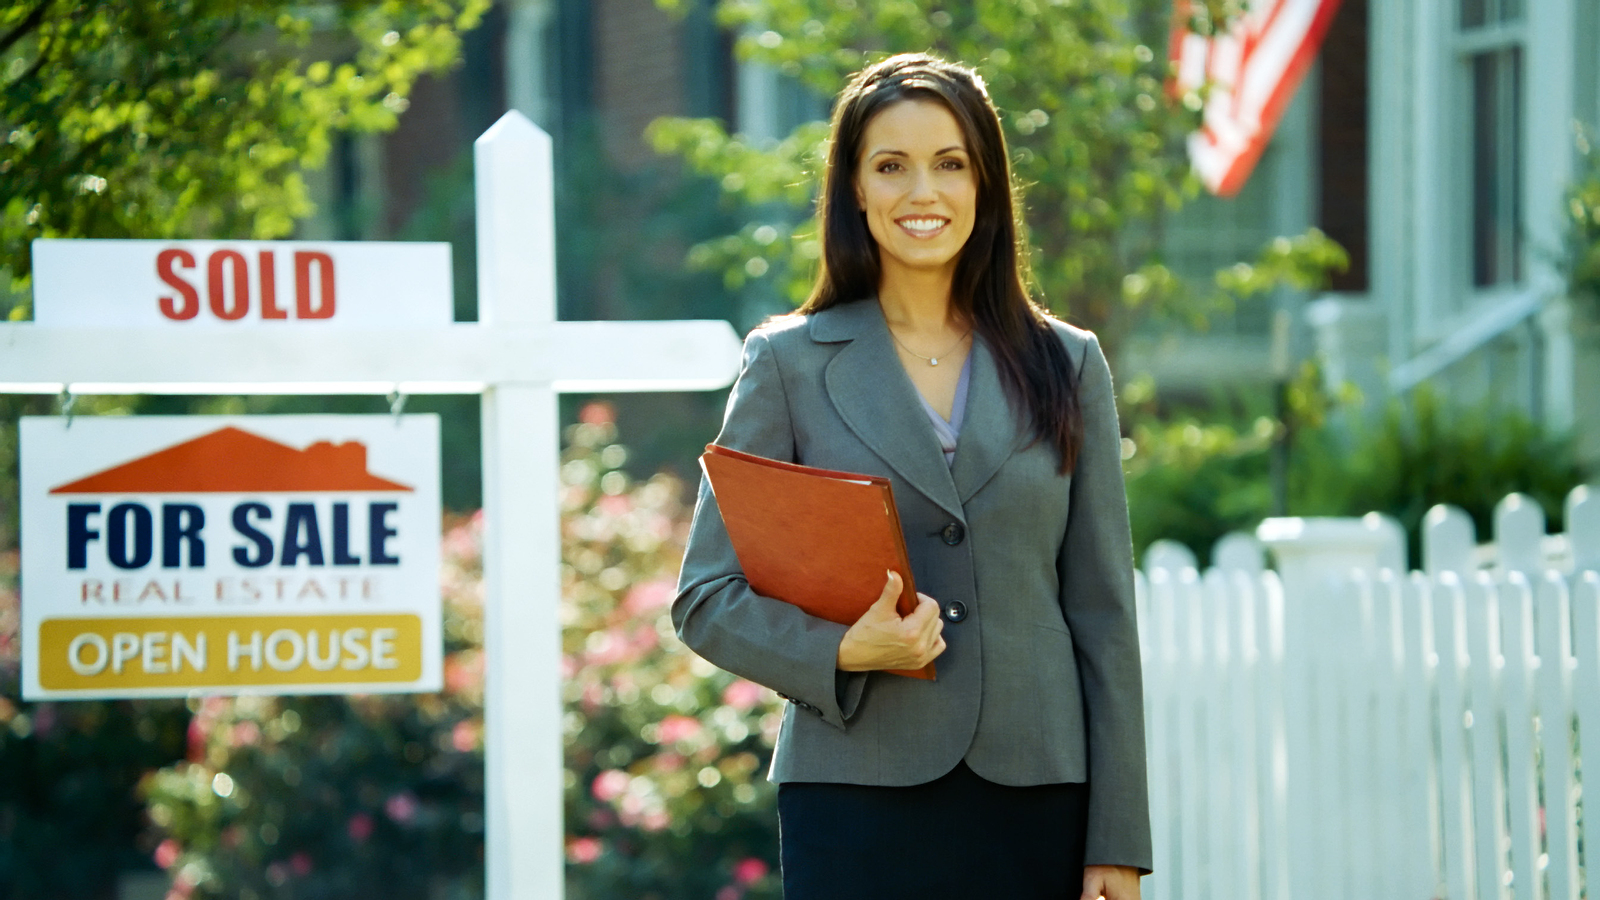 What Certifications Should My Realtor Have